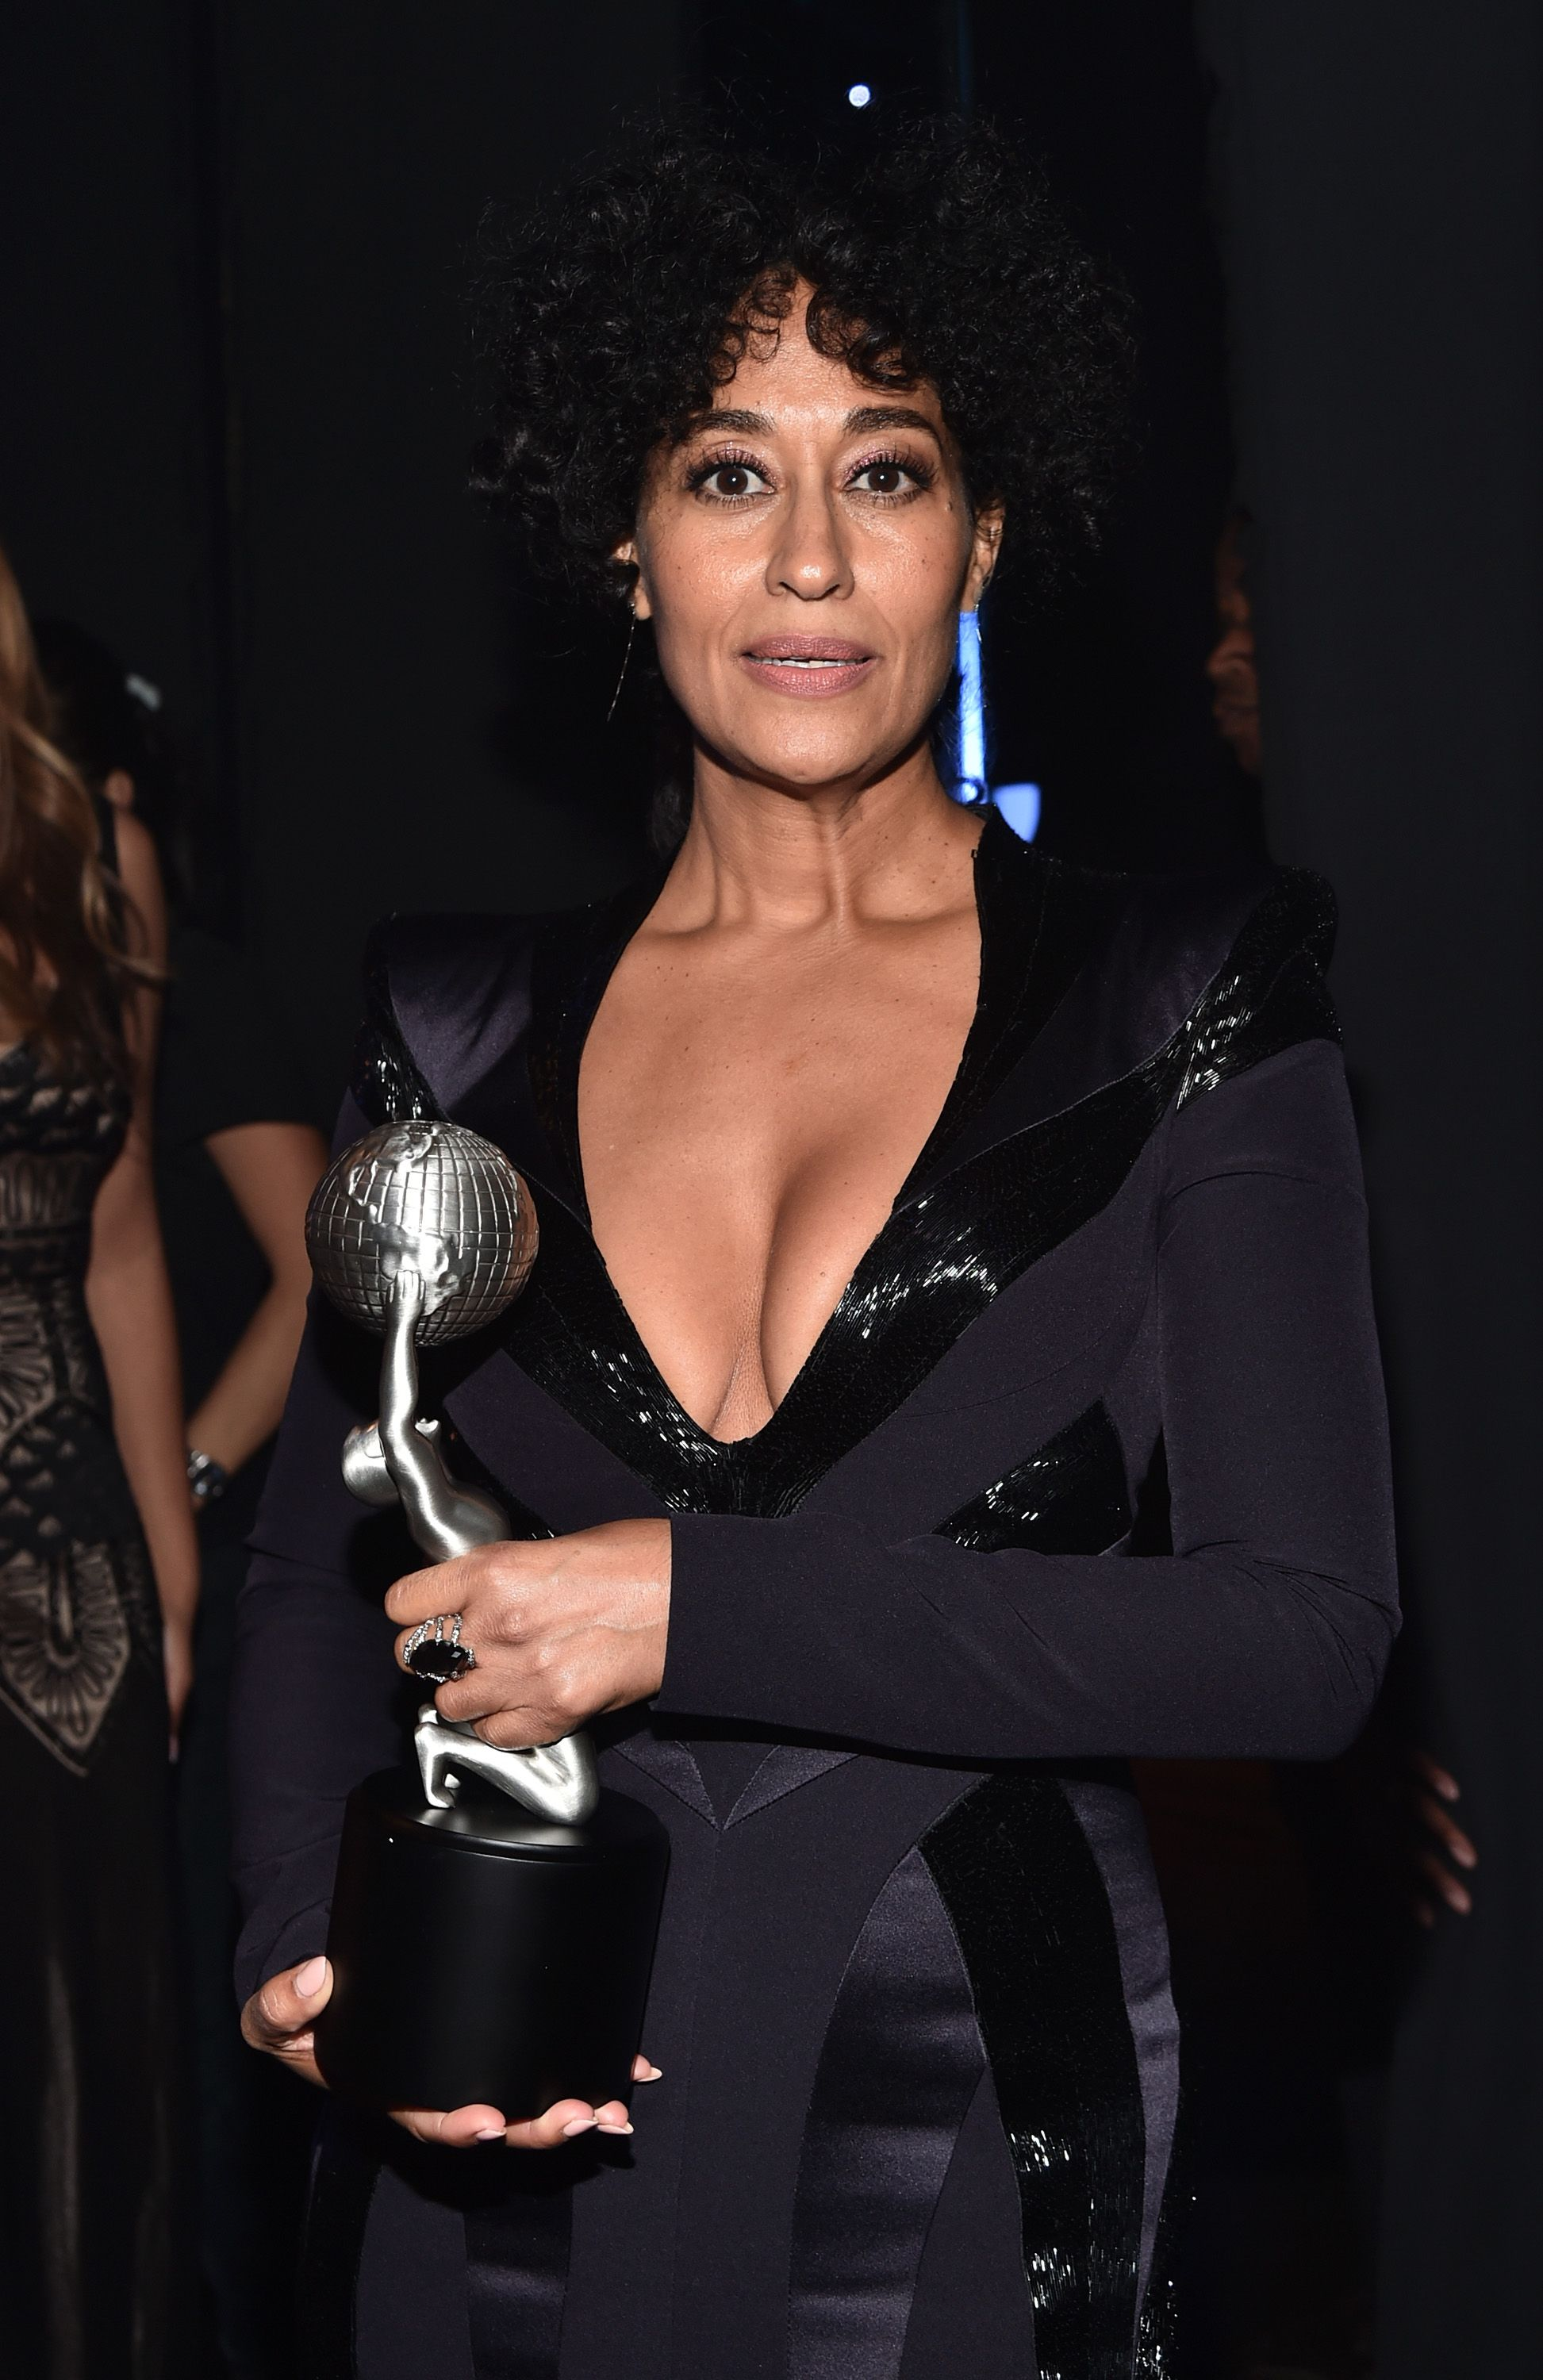 Tracee Ellis Ross during the 47th NAACP Image Awards presented by TV One at Pasadena Civic Auditorium on February 5, 2016 in Pasadena, California.   Source: Getty Images